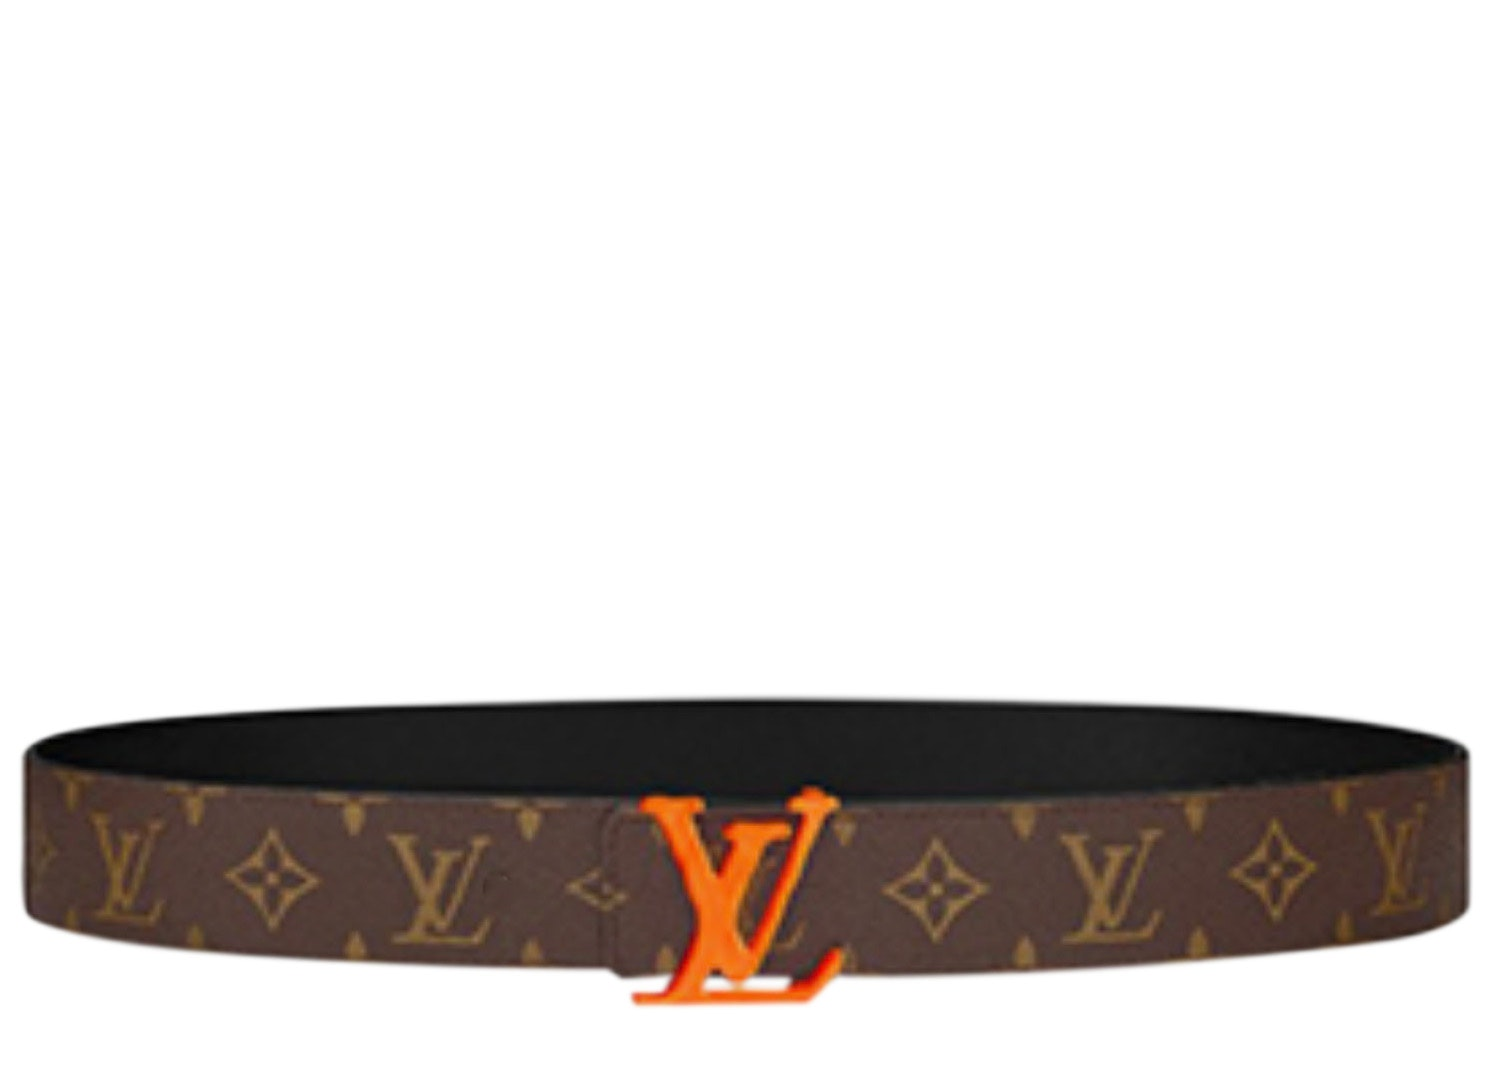 Louis Vuitton Belt LV Initiales Monogram 40MM Brown/Beige